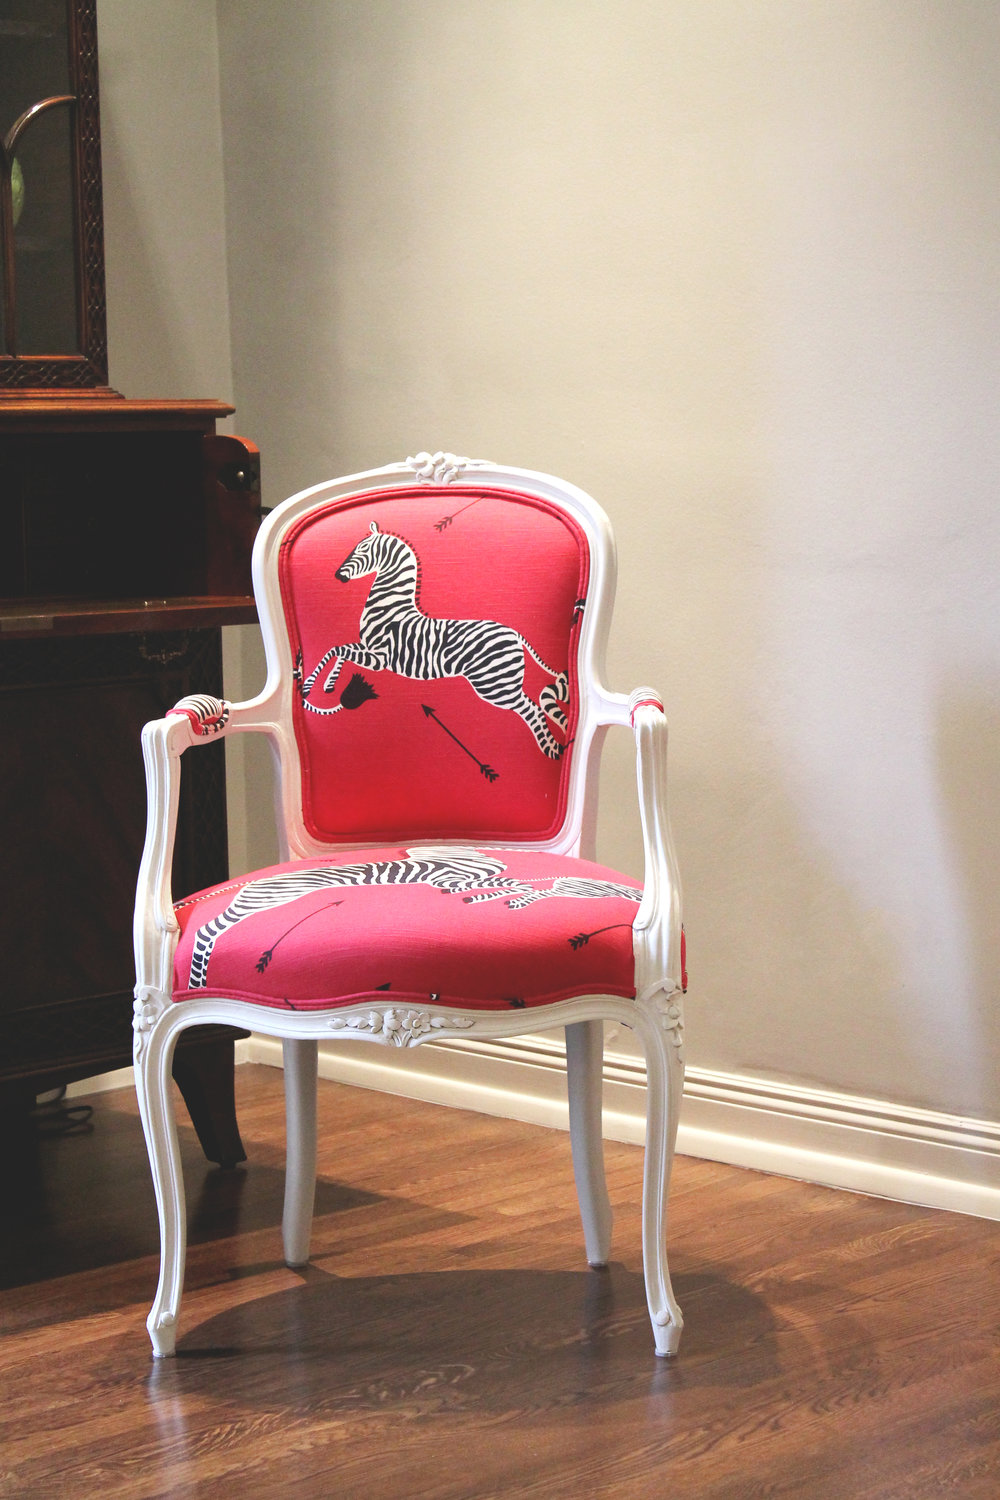 zebra chair.jpg